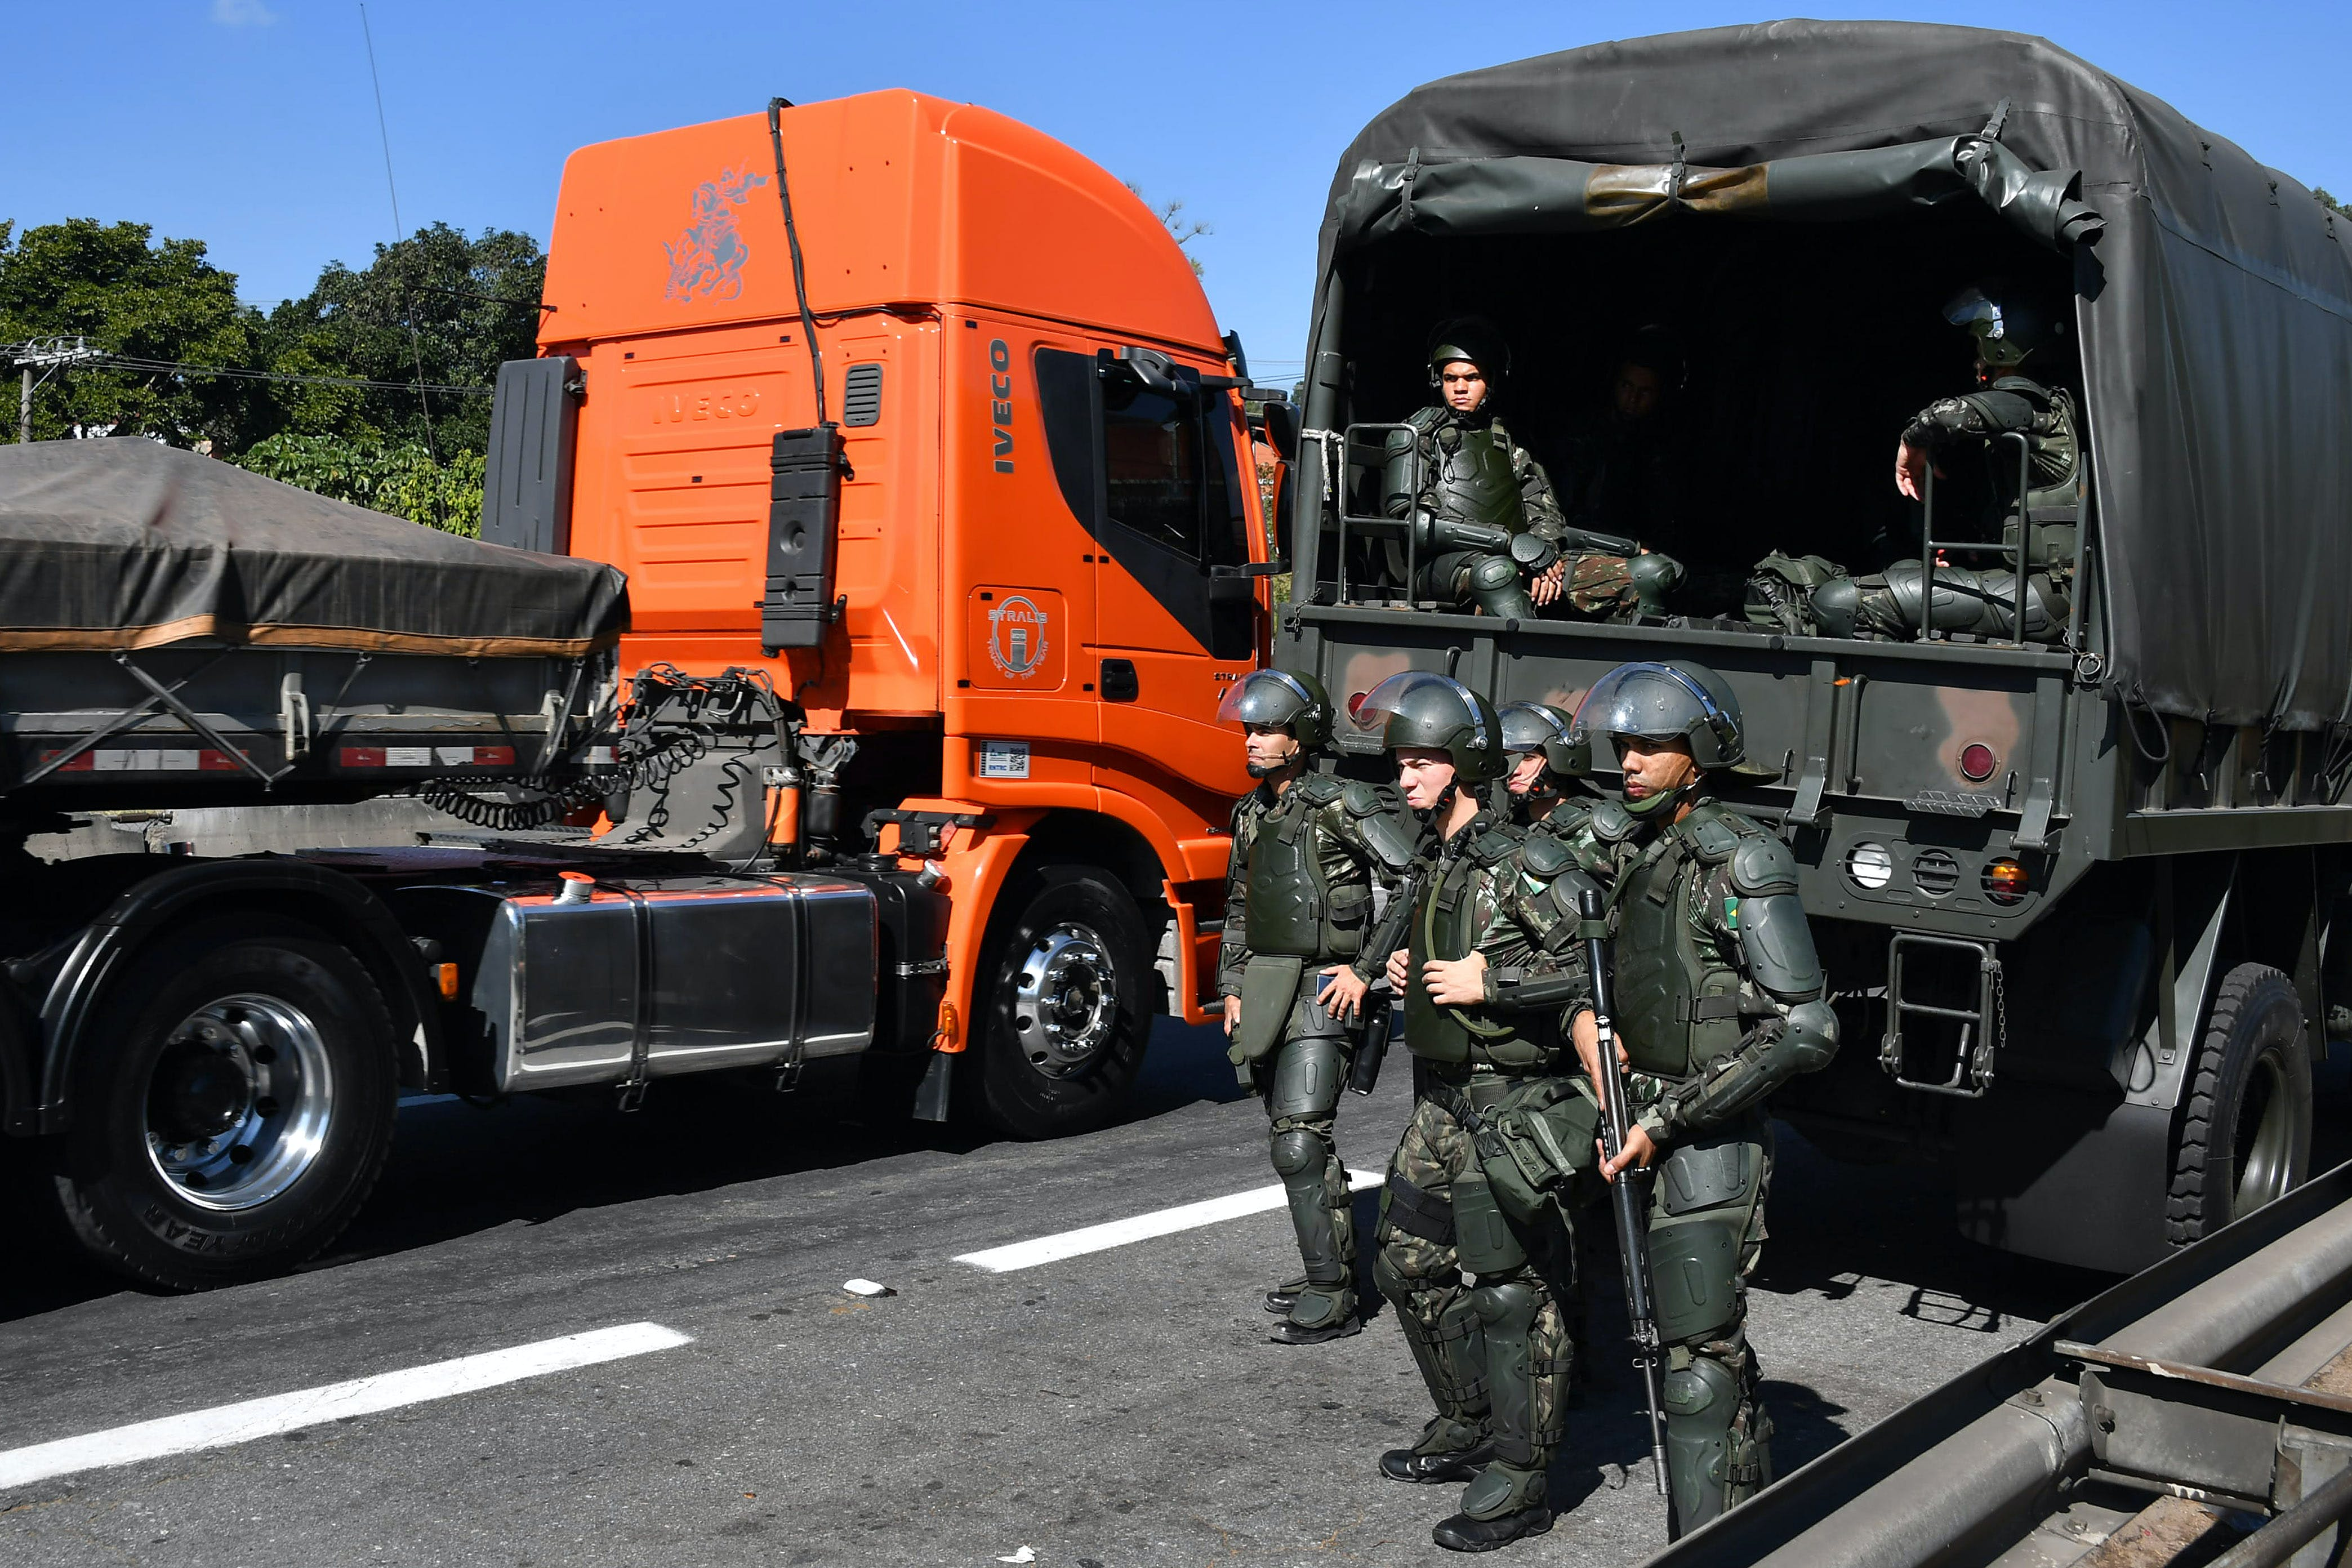 https://theintercept.imgix.net/wp-uploads/sites/1/2018/06/brazil-truckers-strike-military-1527885958.jpg?auto=compress%2Cformat&q=90&w=1000&h=667